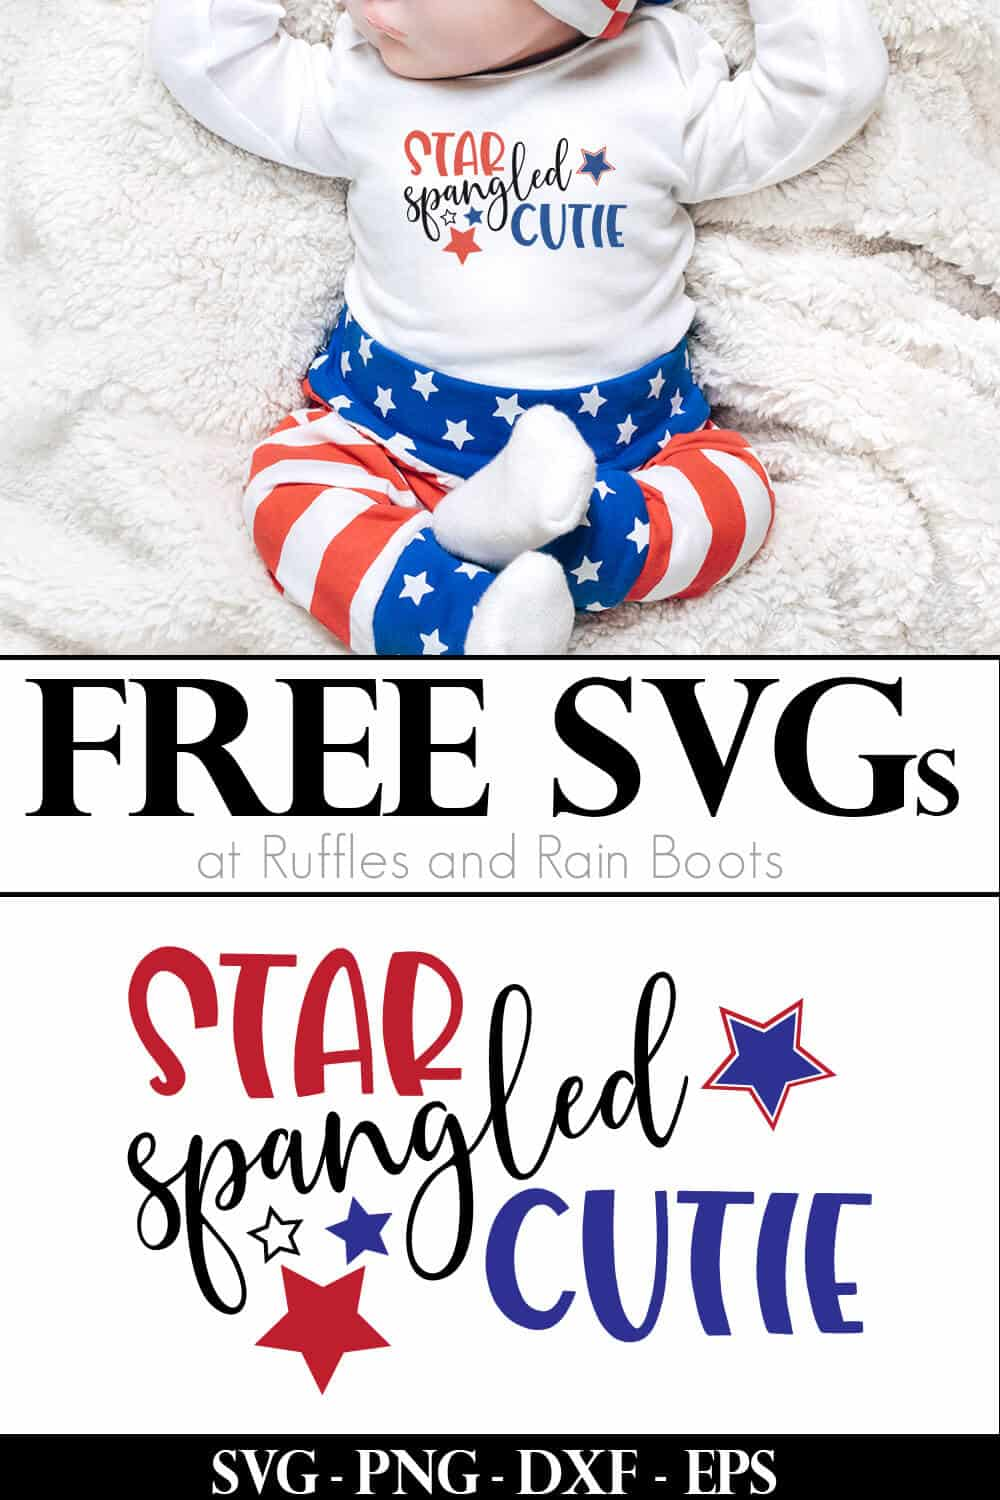 adorable onesie with red white and blue star spangled cutie svg and flag pants on white blanket with text which reads free svgs at Ruffles and Rain Boots